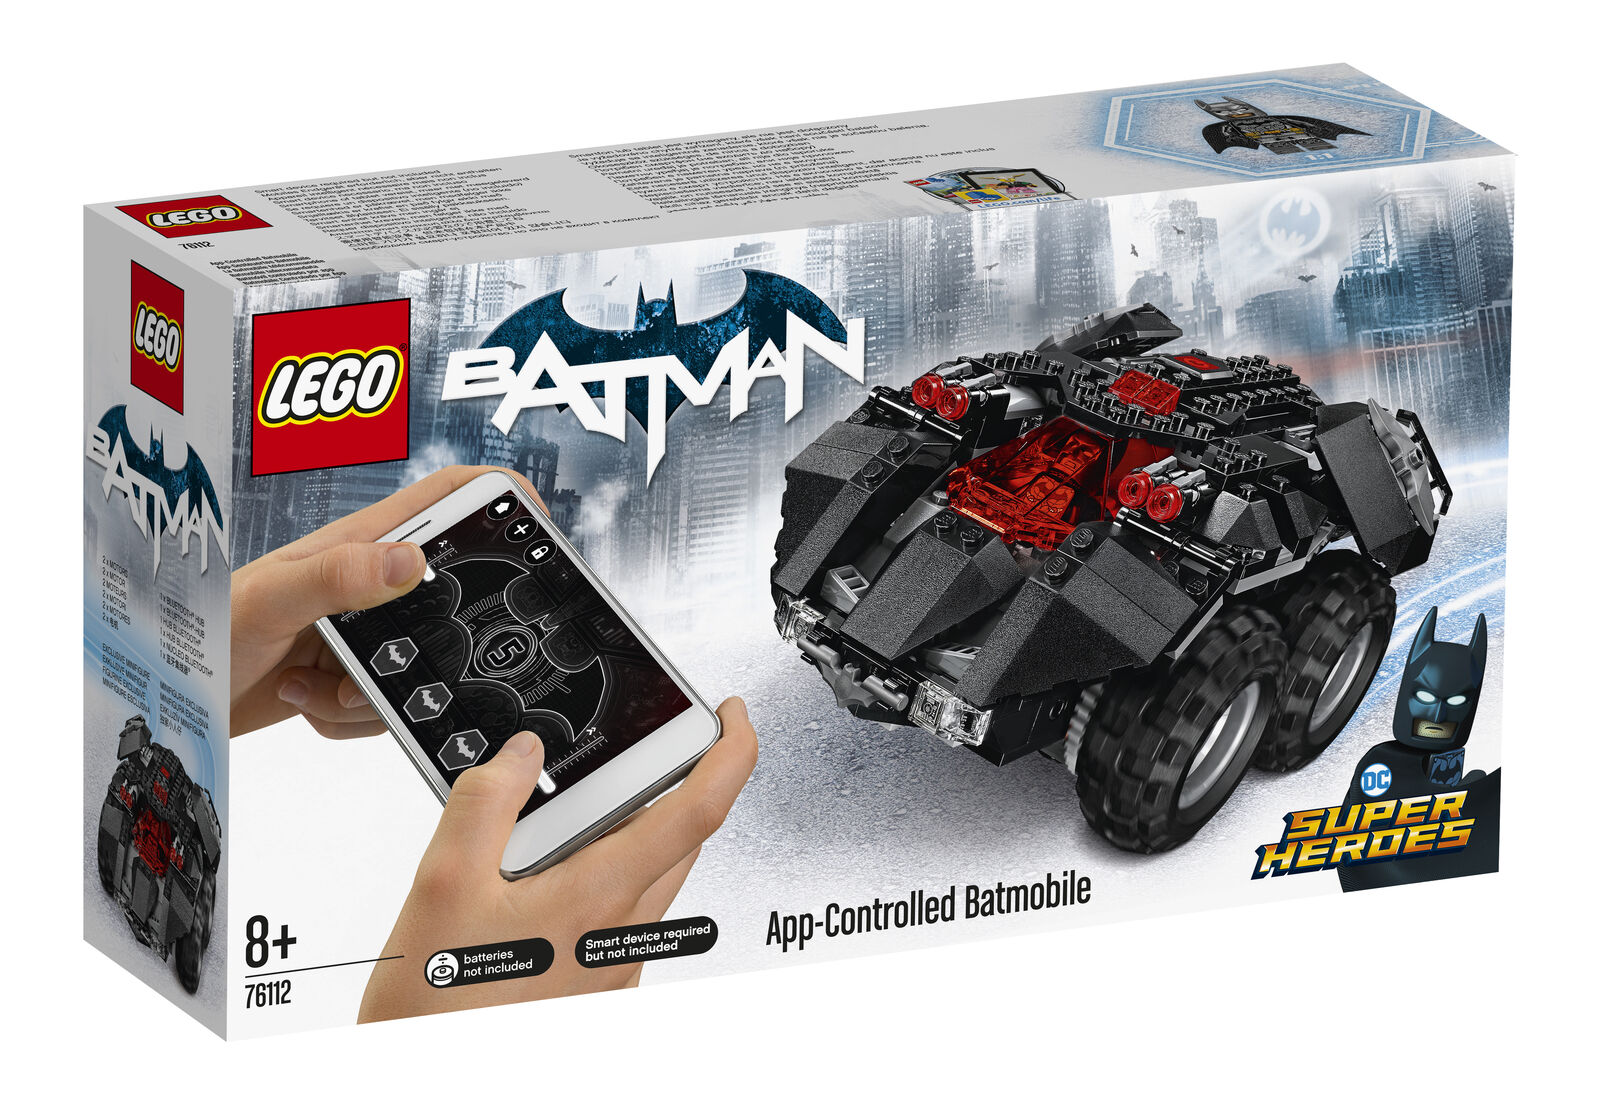 LEGO DC Comics Batman App Controlled Batmobile Toy Car Model 76112 (8+ Years)